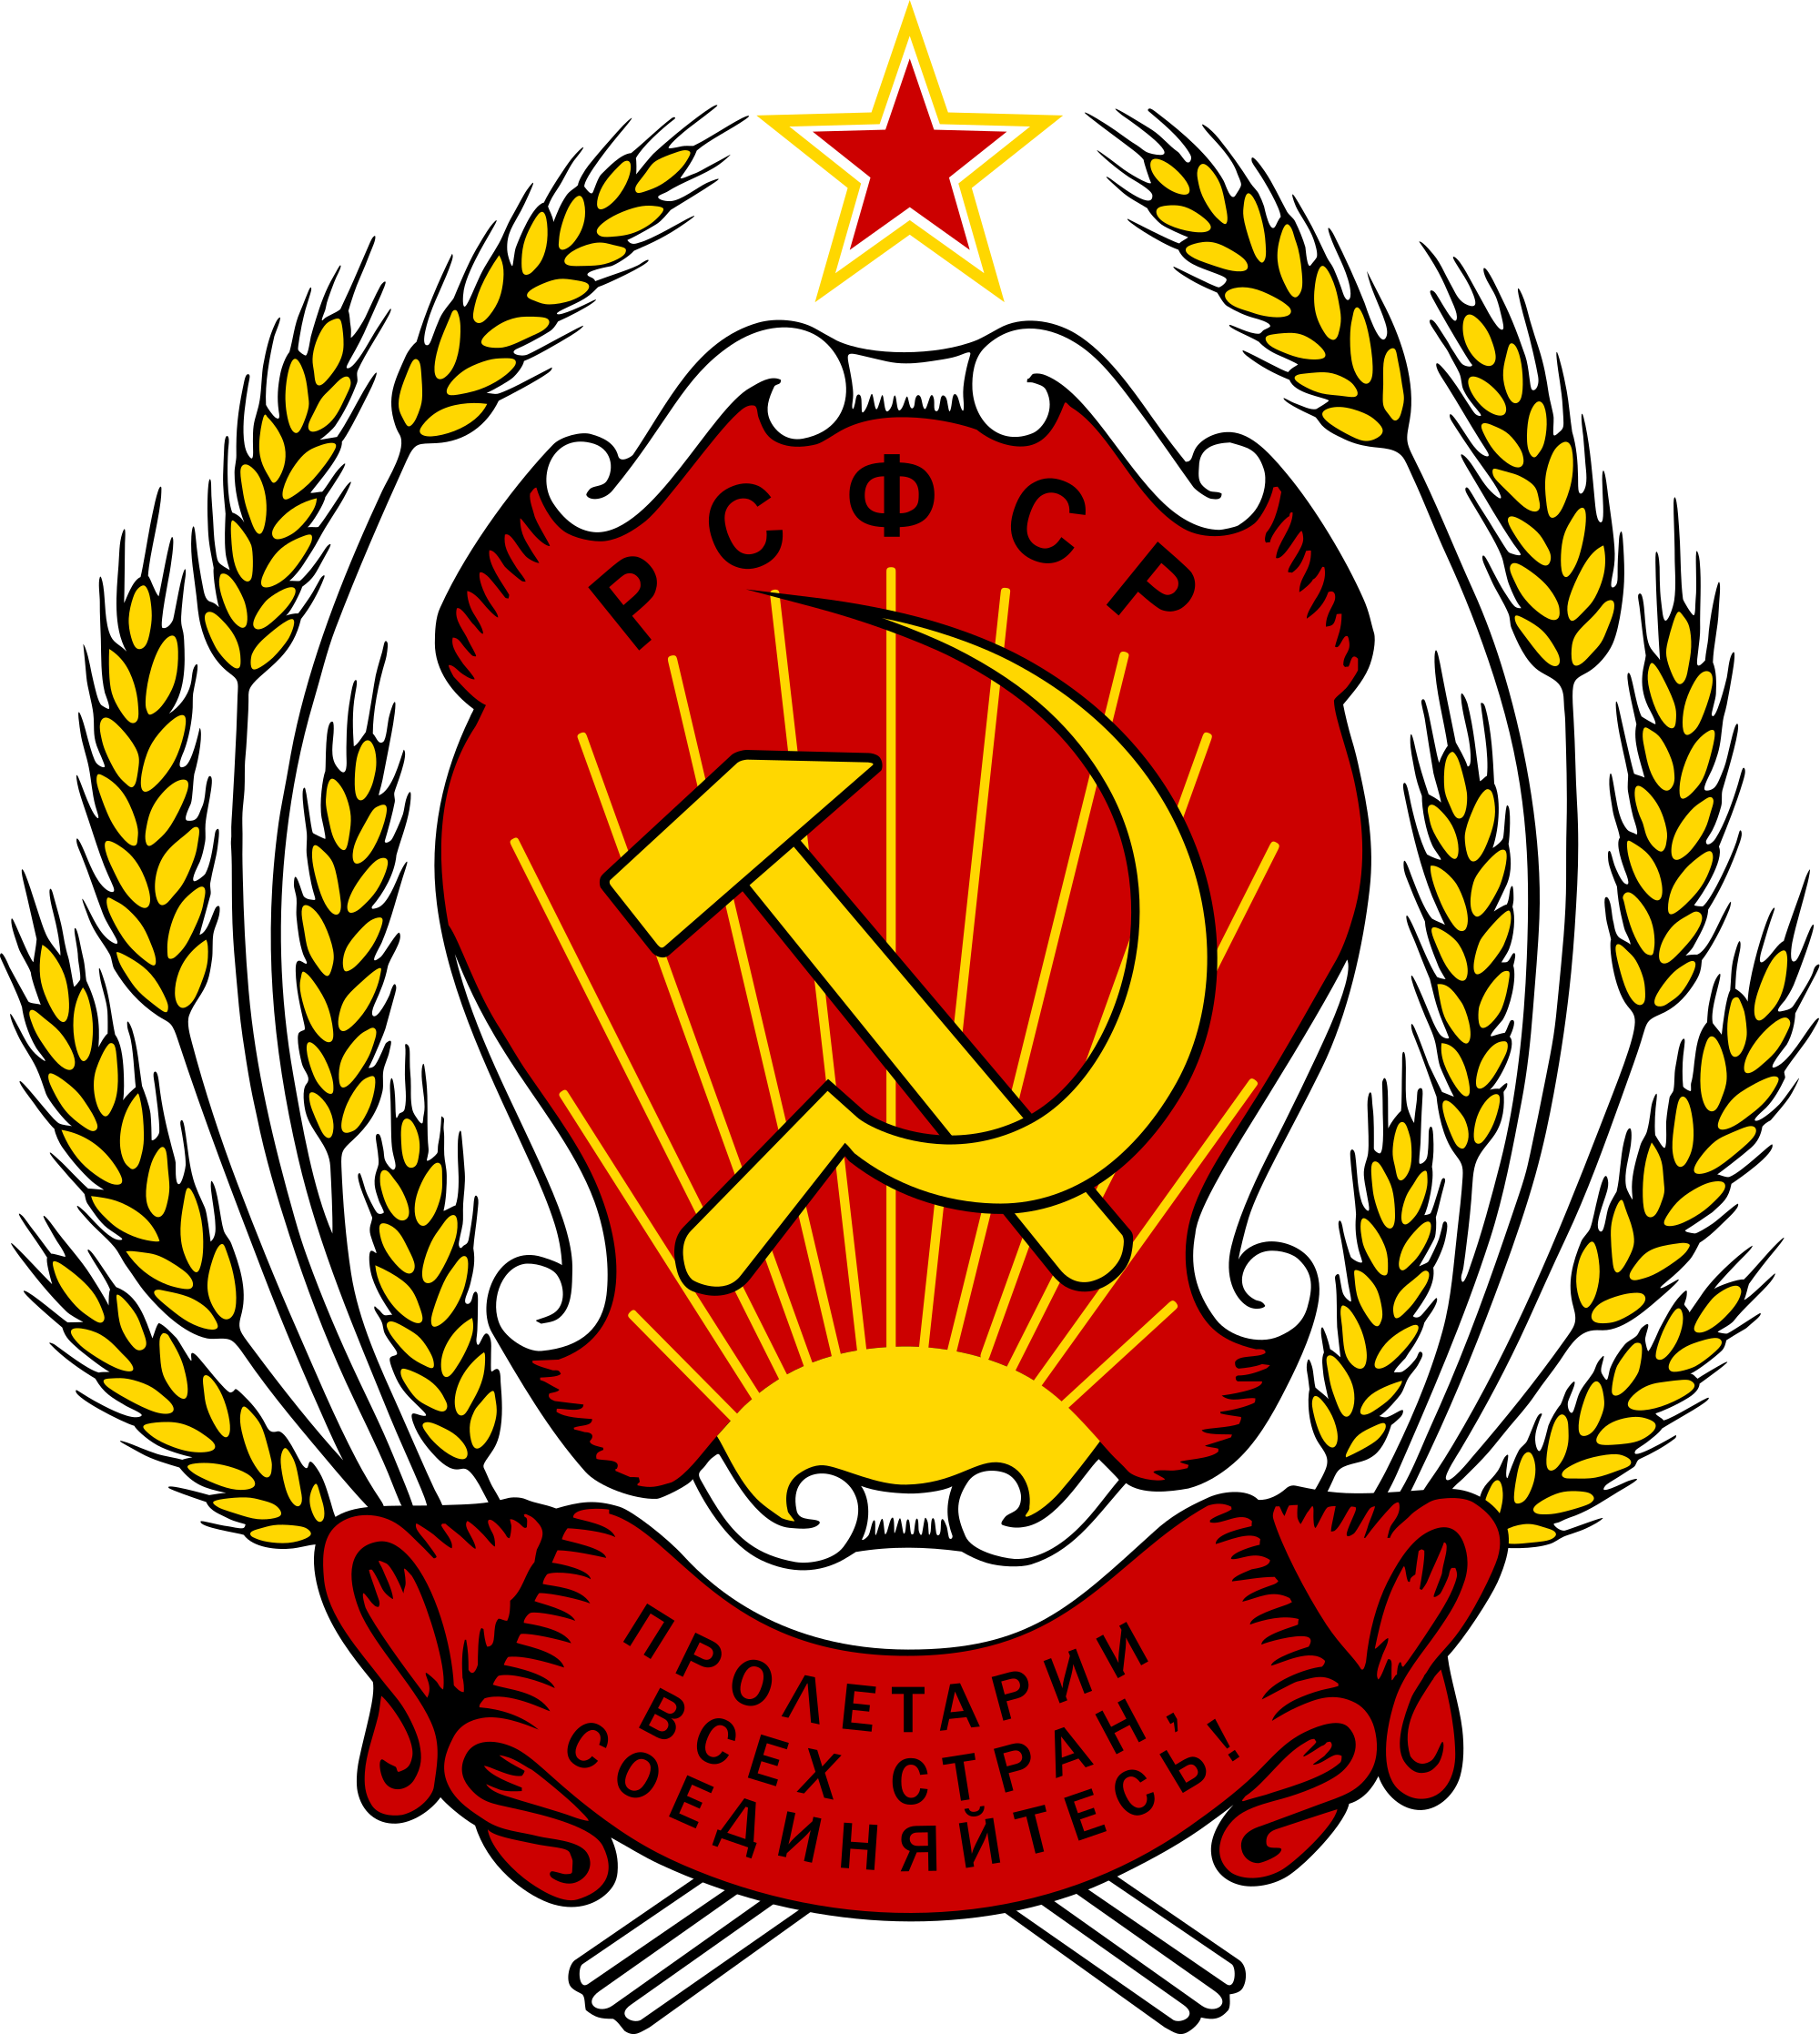 Wheat clipart crest. Emblem of the russian